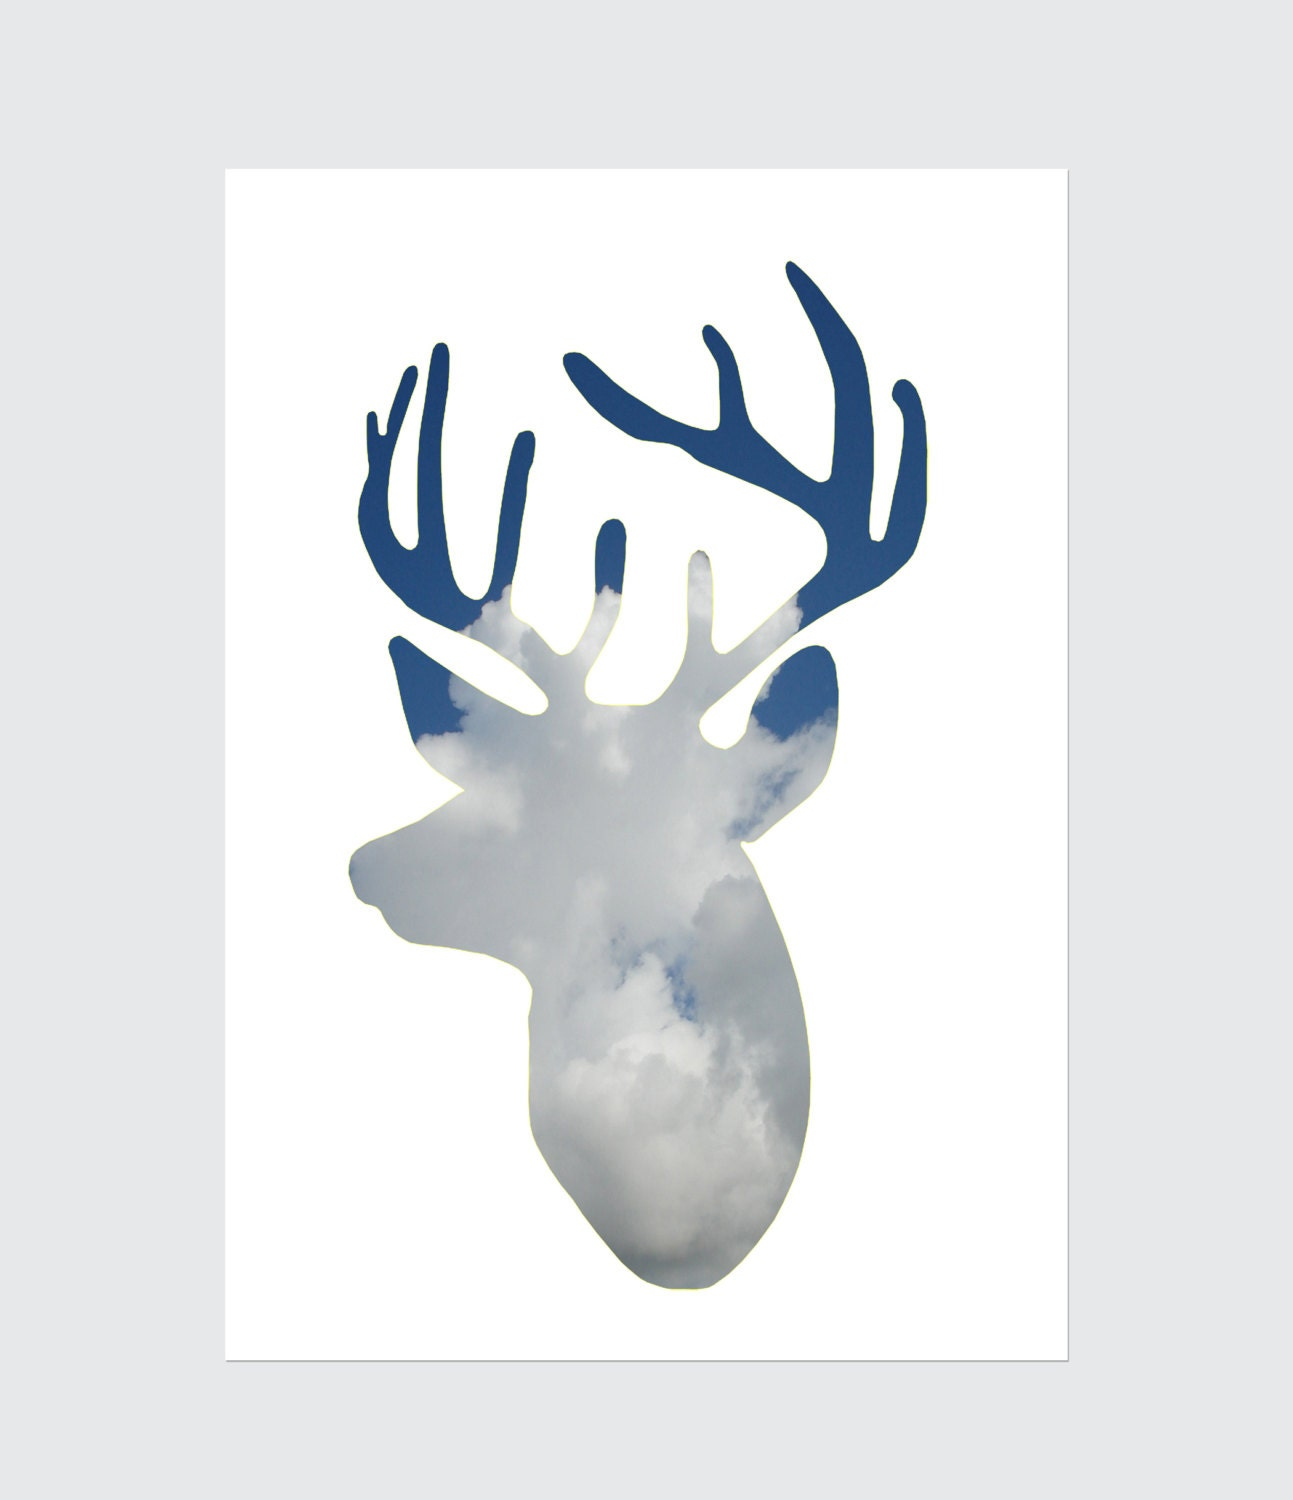 Reindeer Silhouette Print 8x10 inches-Cloudy -Wall art- Home decor- Reindeer Spirit- Earth Day-Blue - MILKANDPAPER